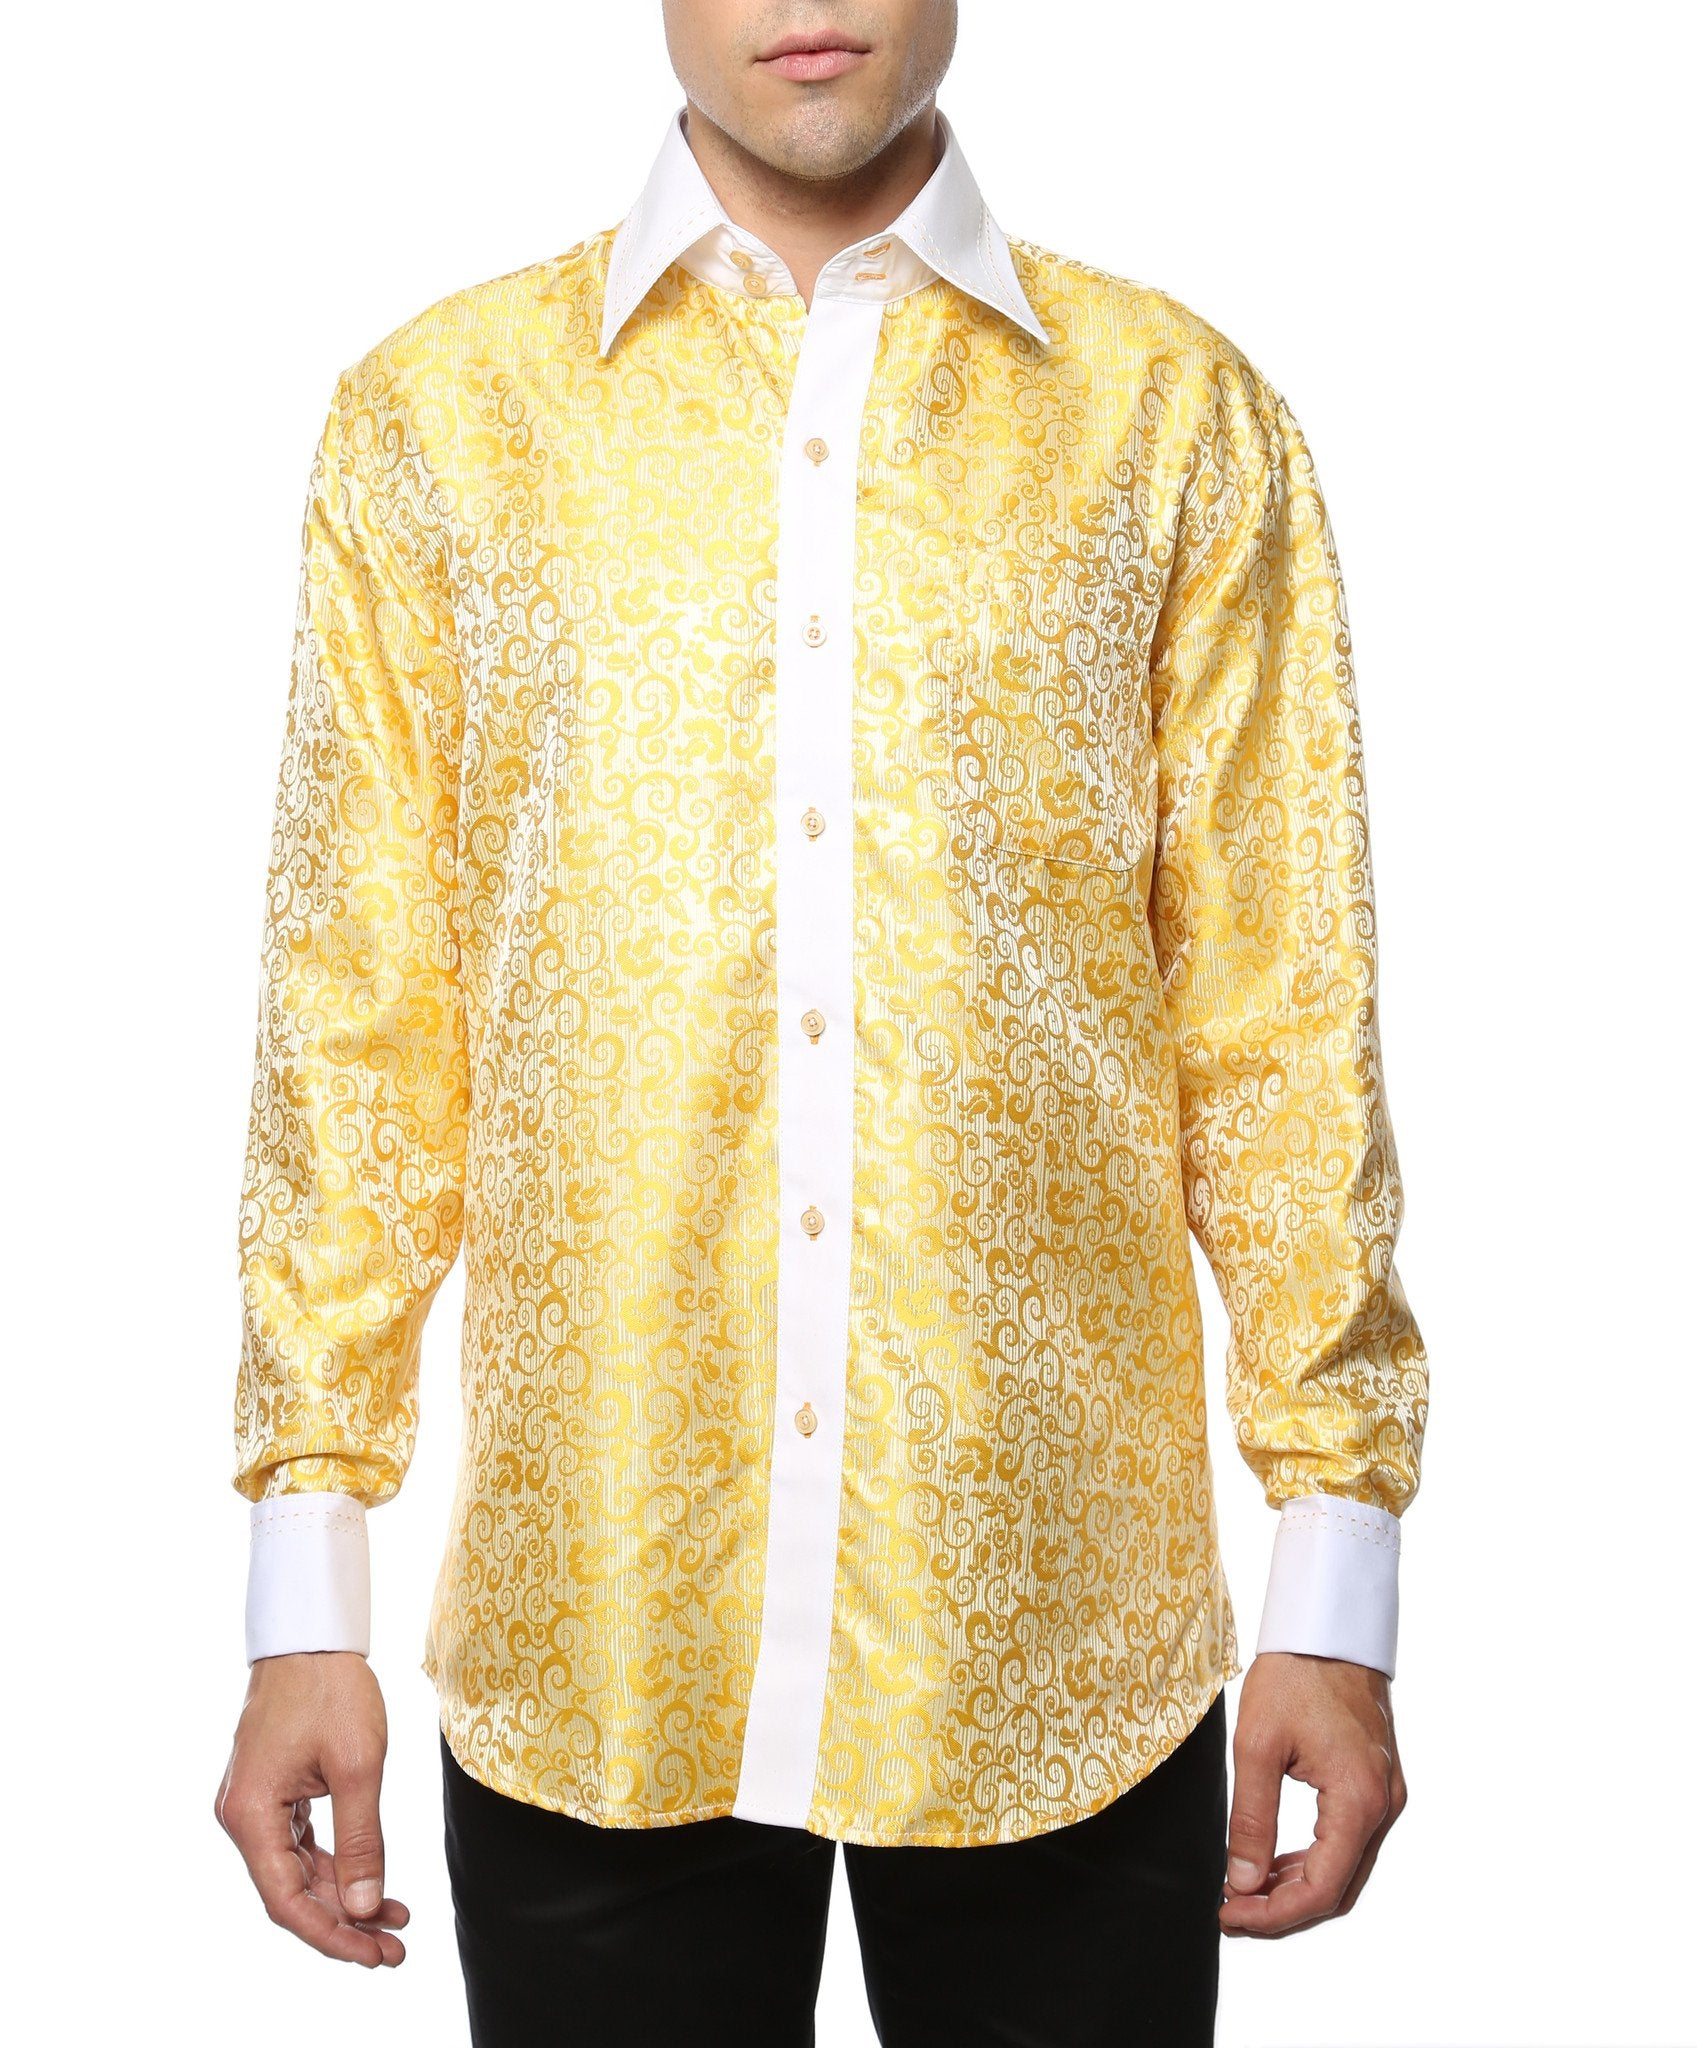 Ferrecci Men's Satine Hi-1026 Yellow Pattern Button Down Dress Shirt - Giorgio's Menswear